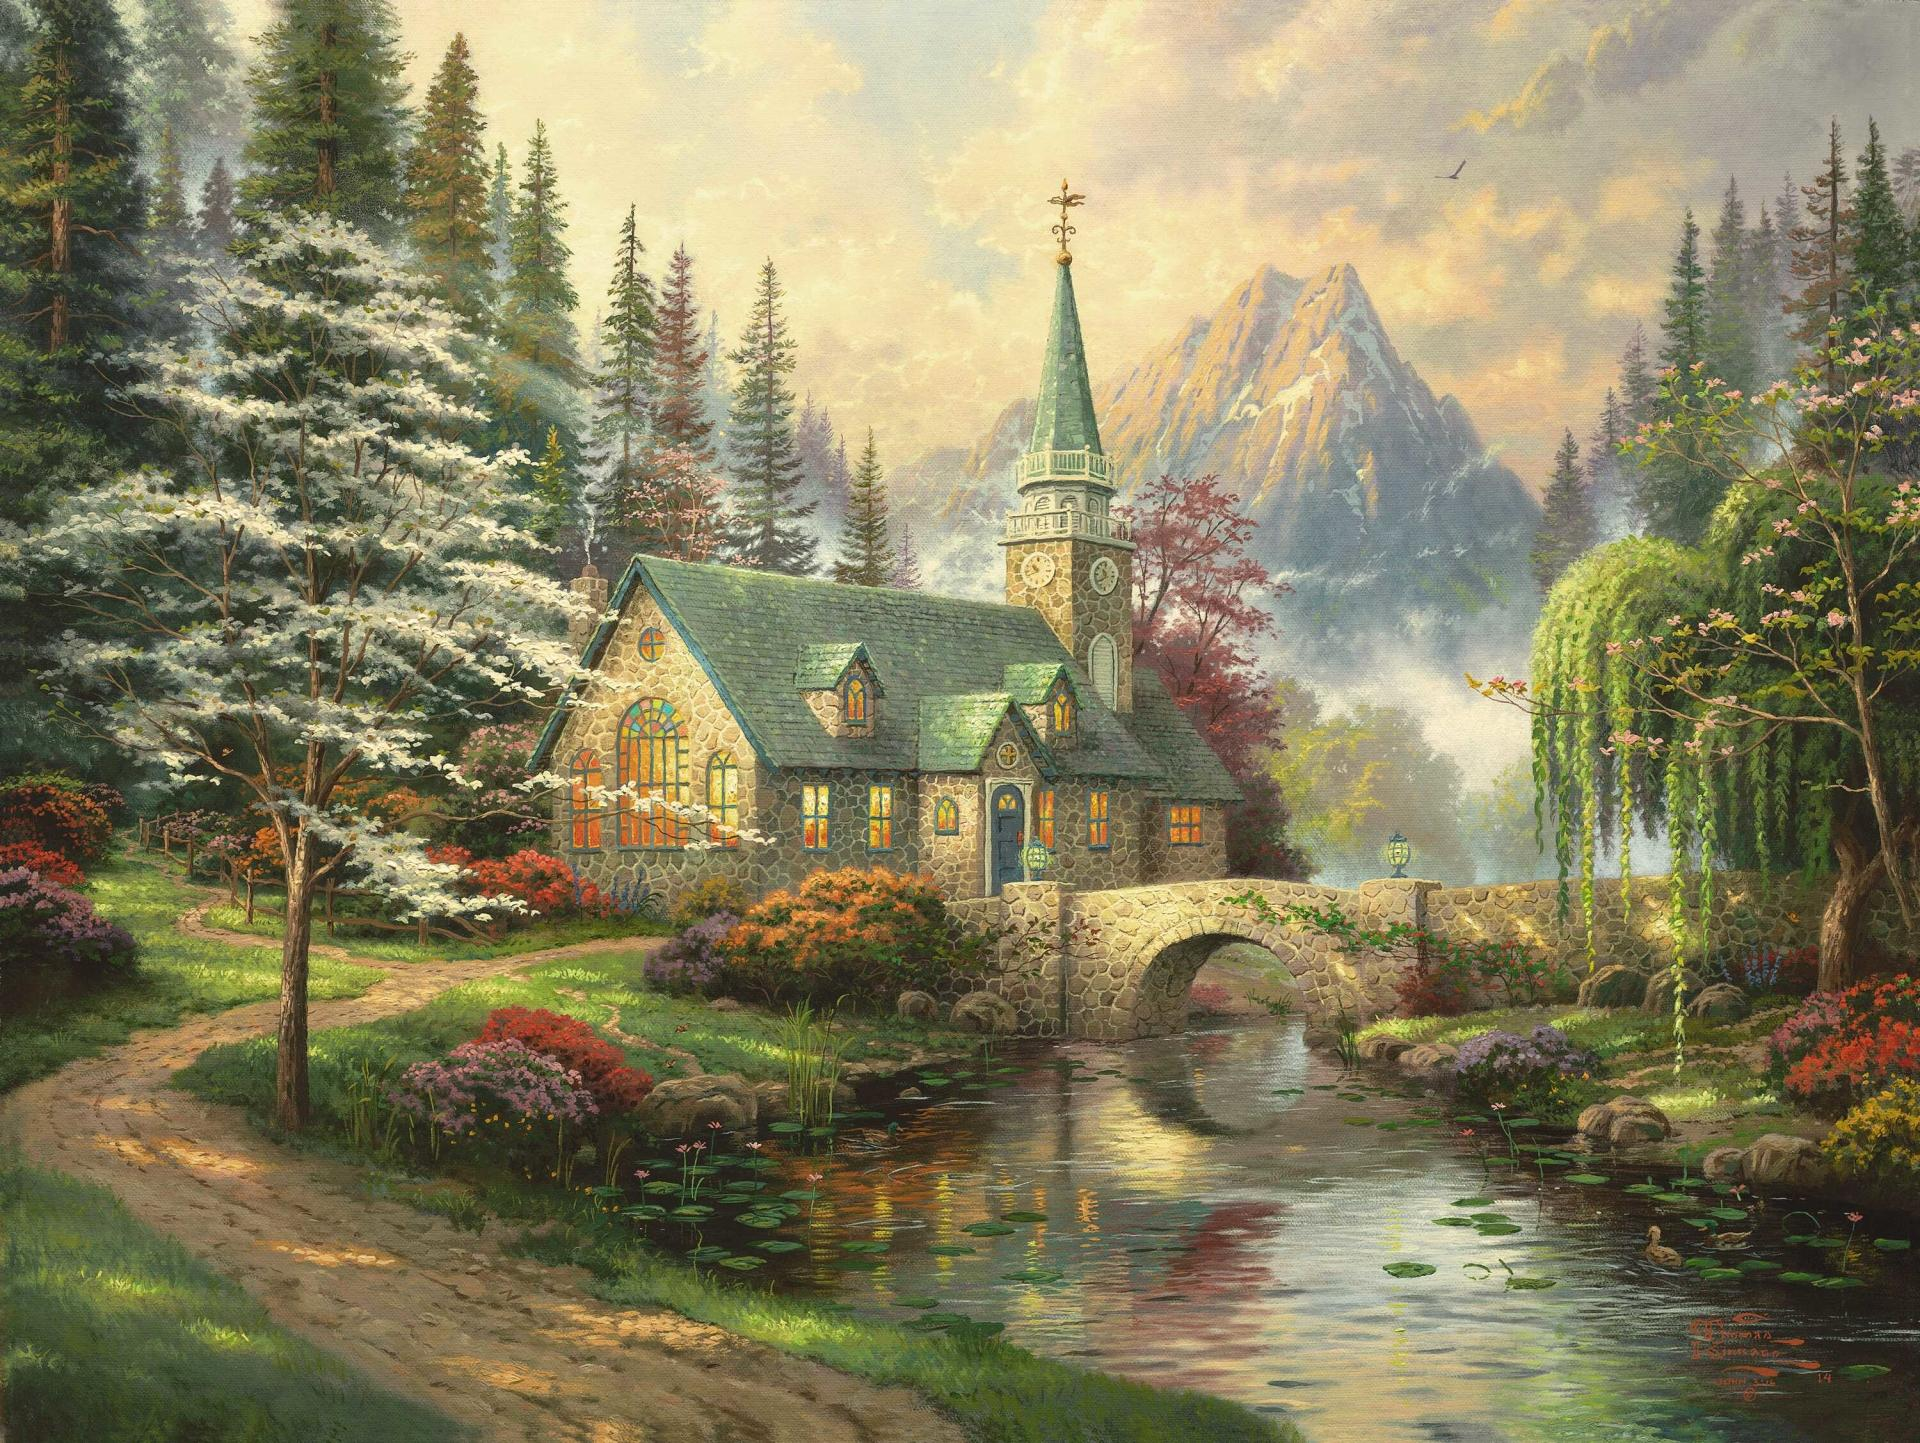 Building Artistic wallpapers HD quality